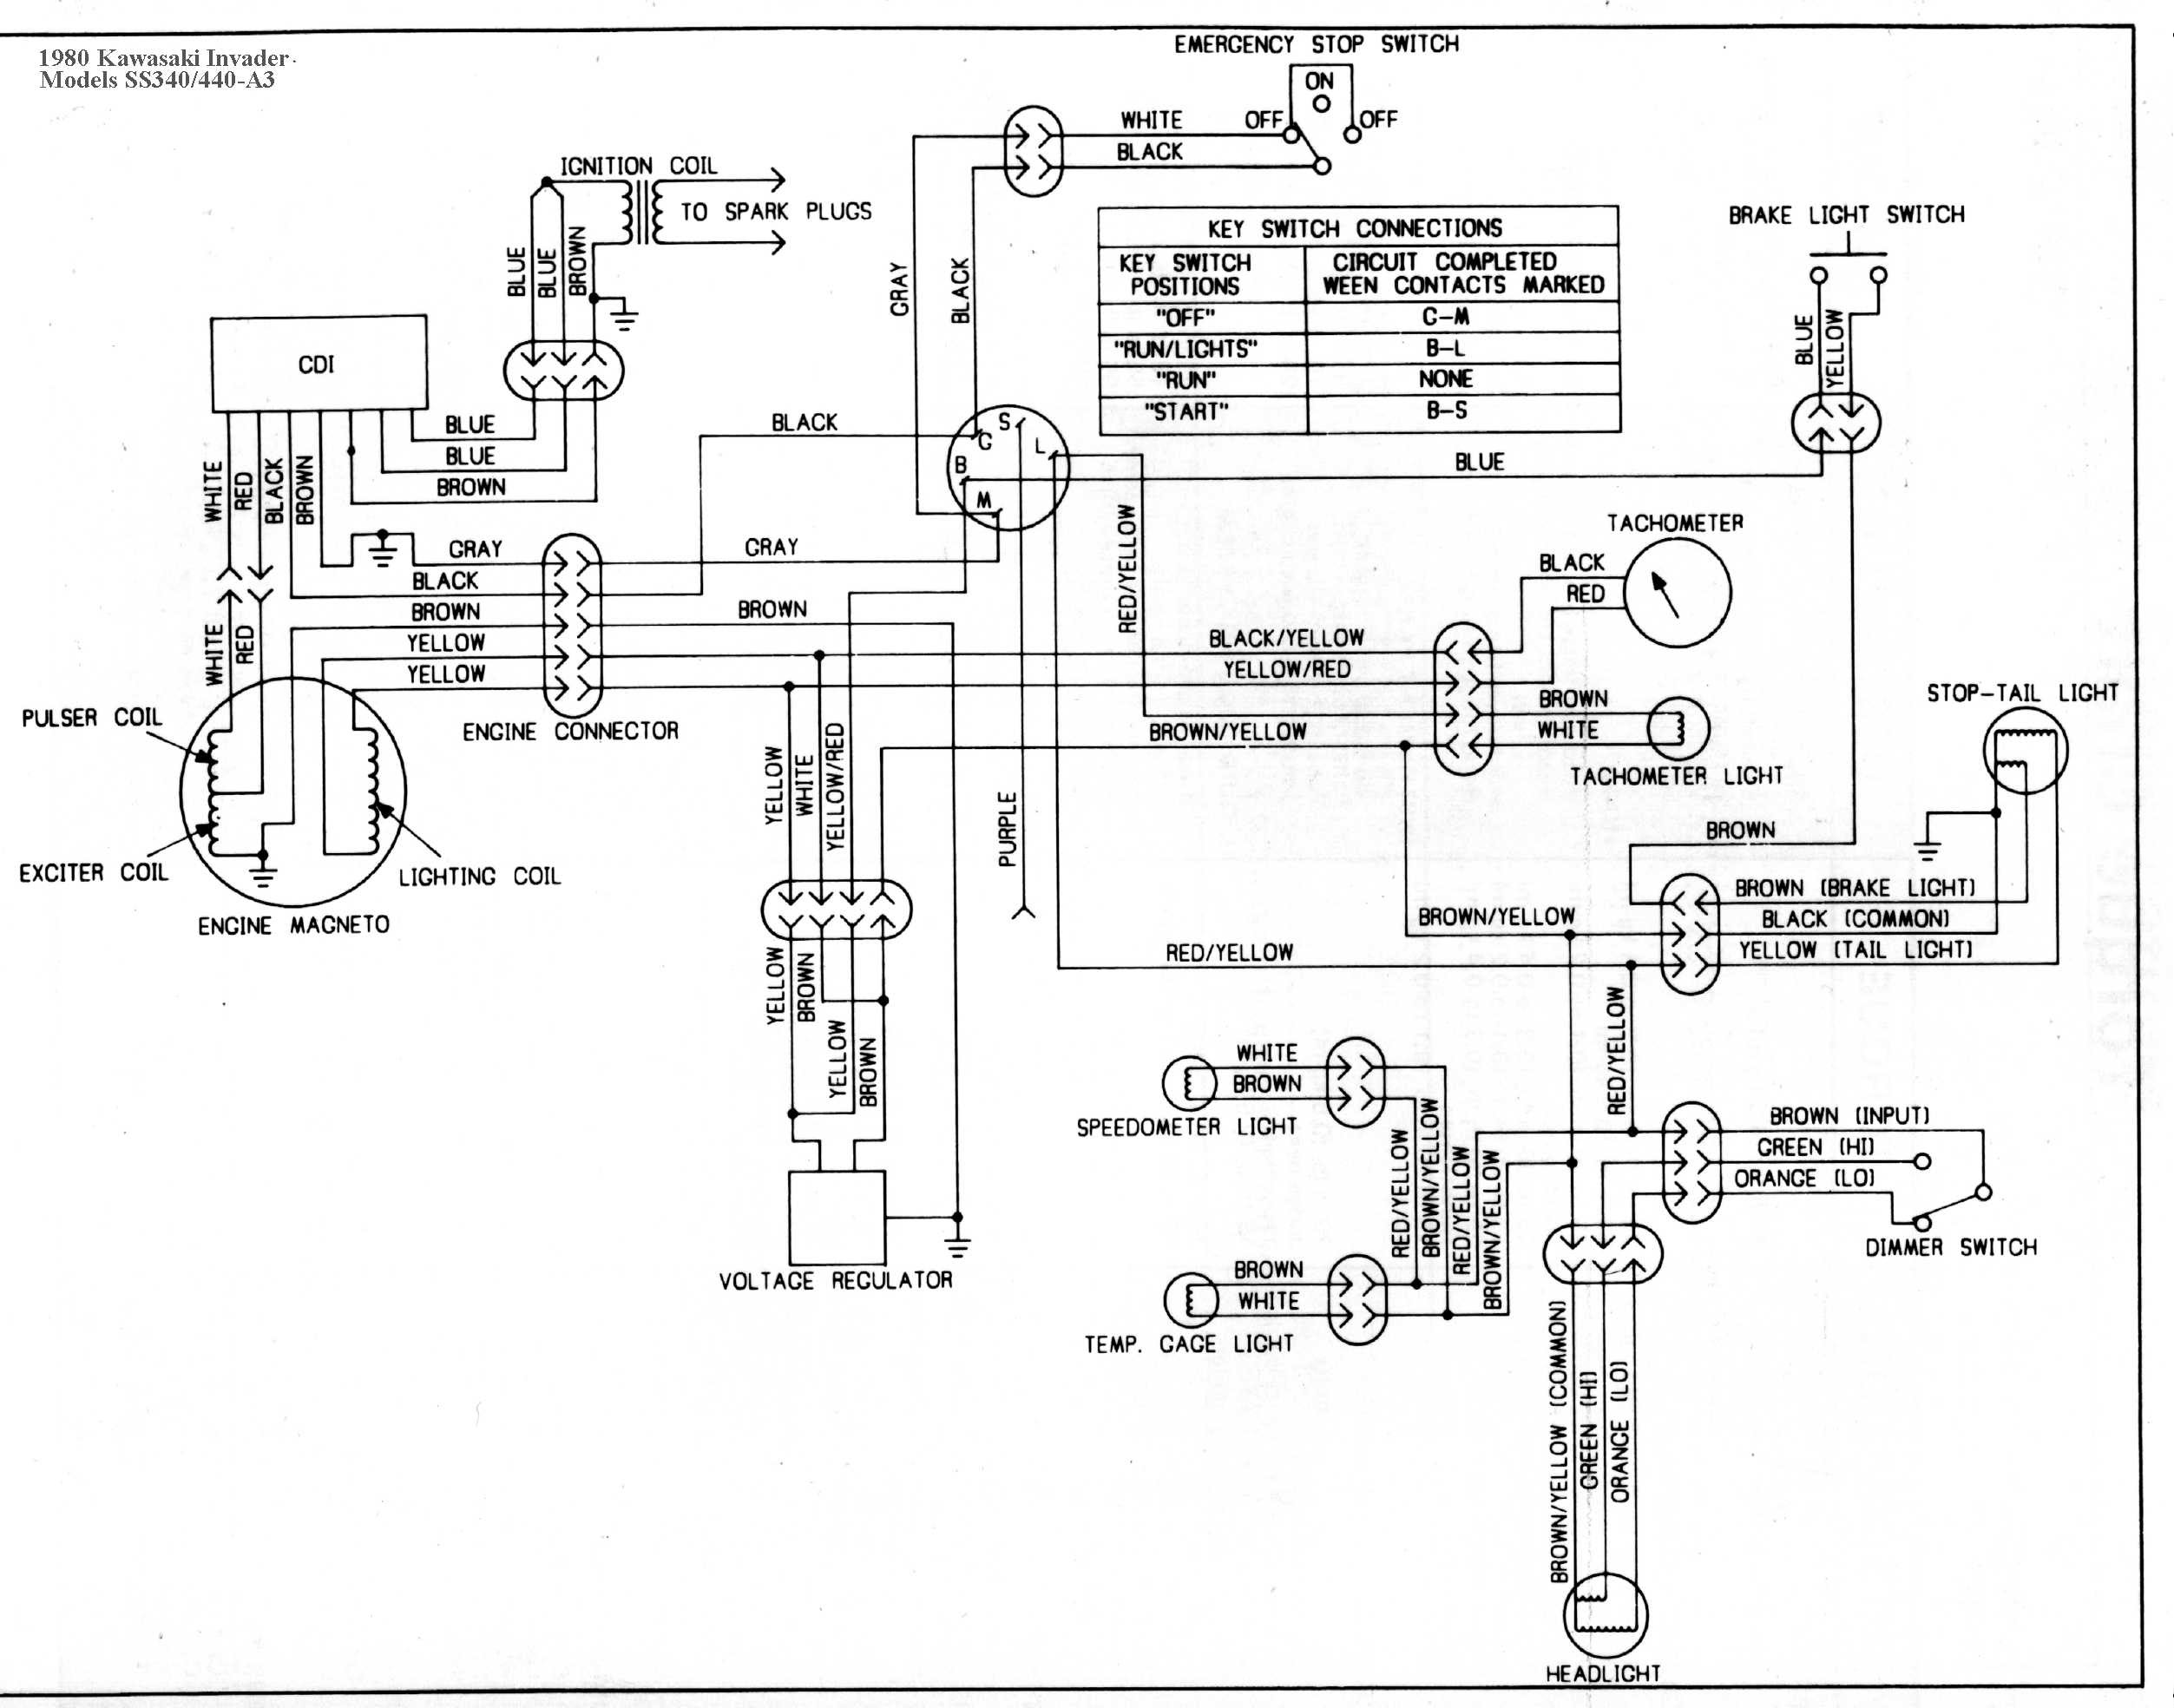 1970 Rupp 440 Ignition Wiring Schematic Wiring Diagram Under1 Under1 Bujinkan It